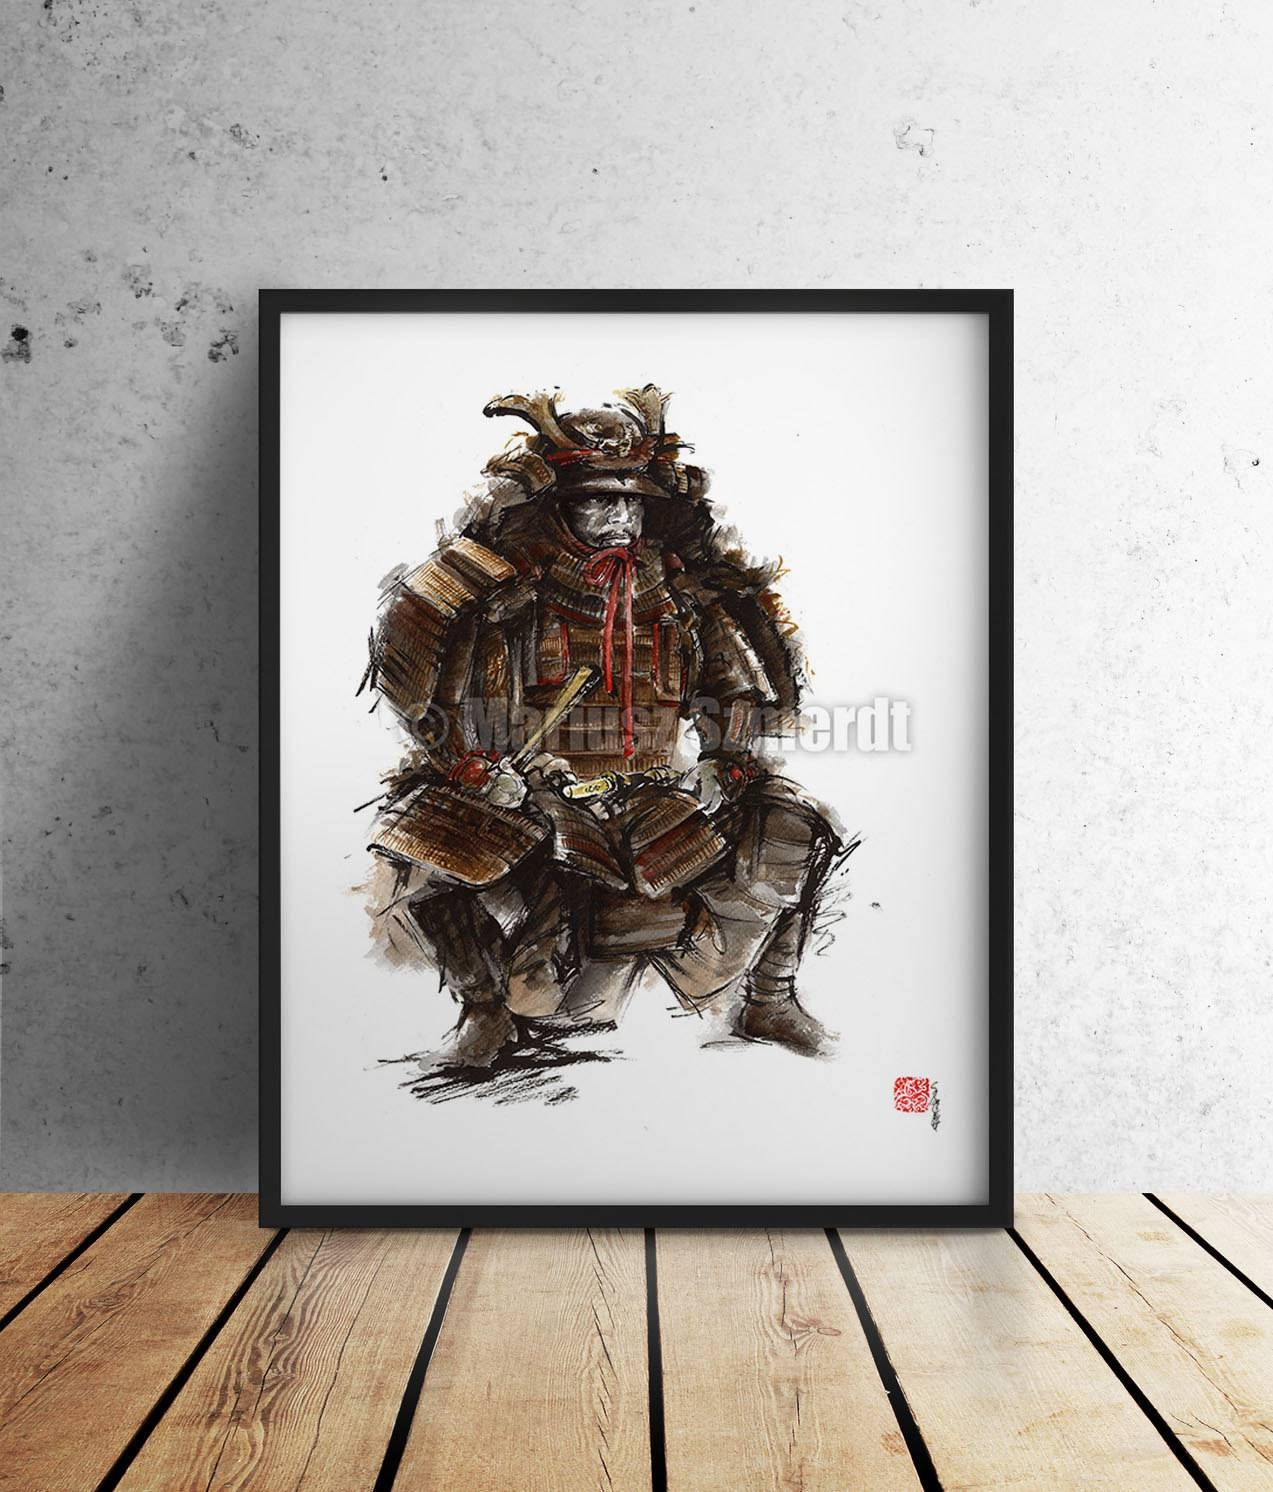 Samurai Japanese Painting Art Warrior Armor Artwork Japanese Pertaining To Most Up To Date Samurai Wall Art (View 10 of 20)